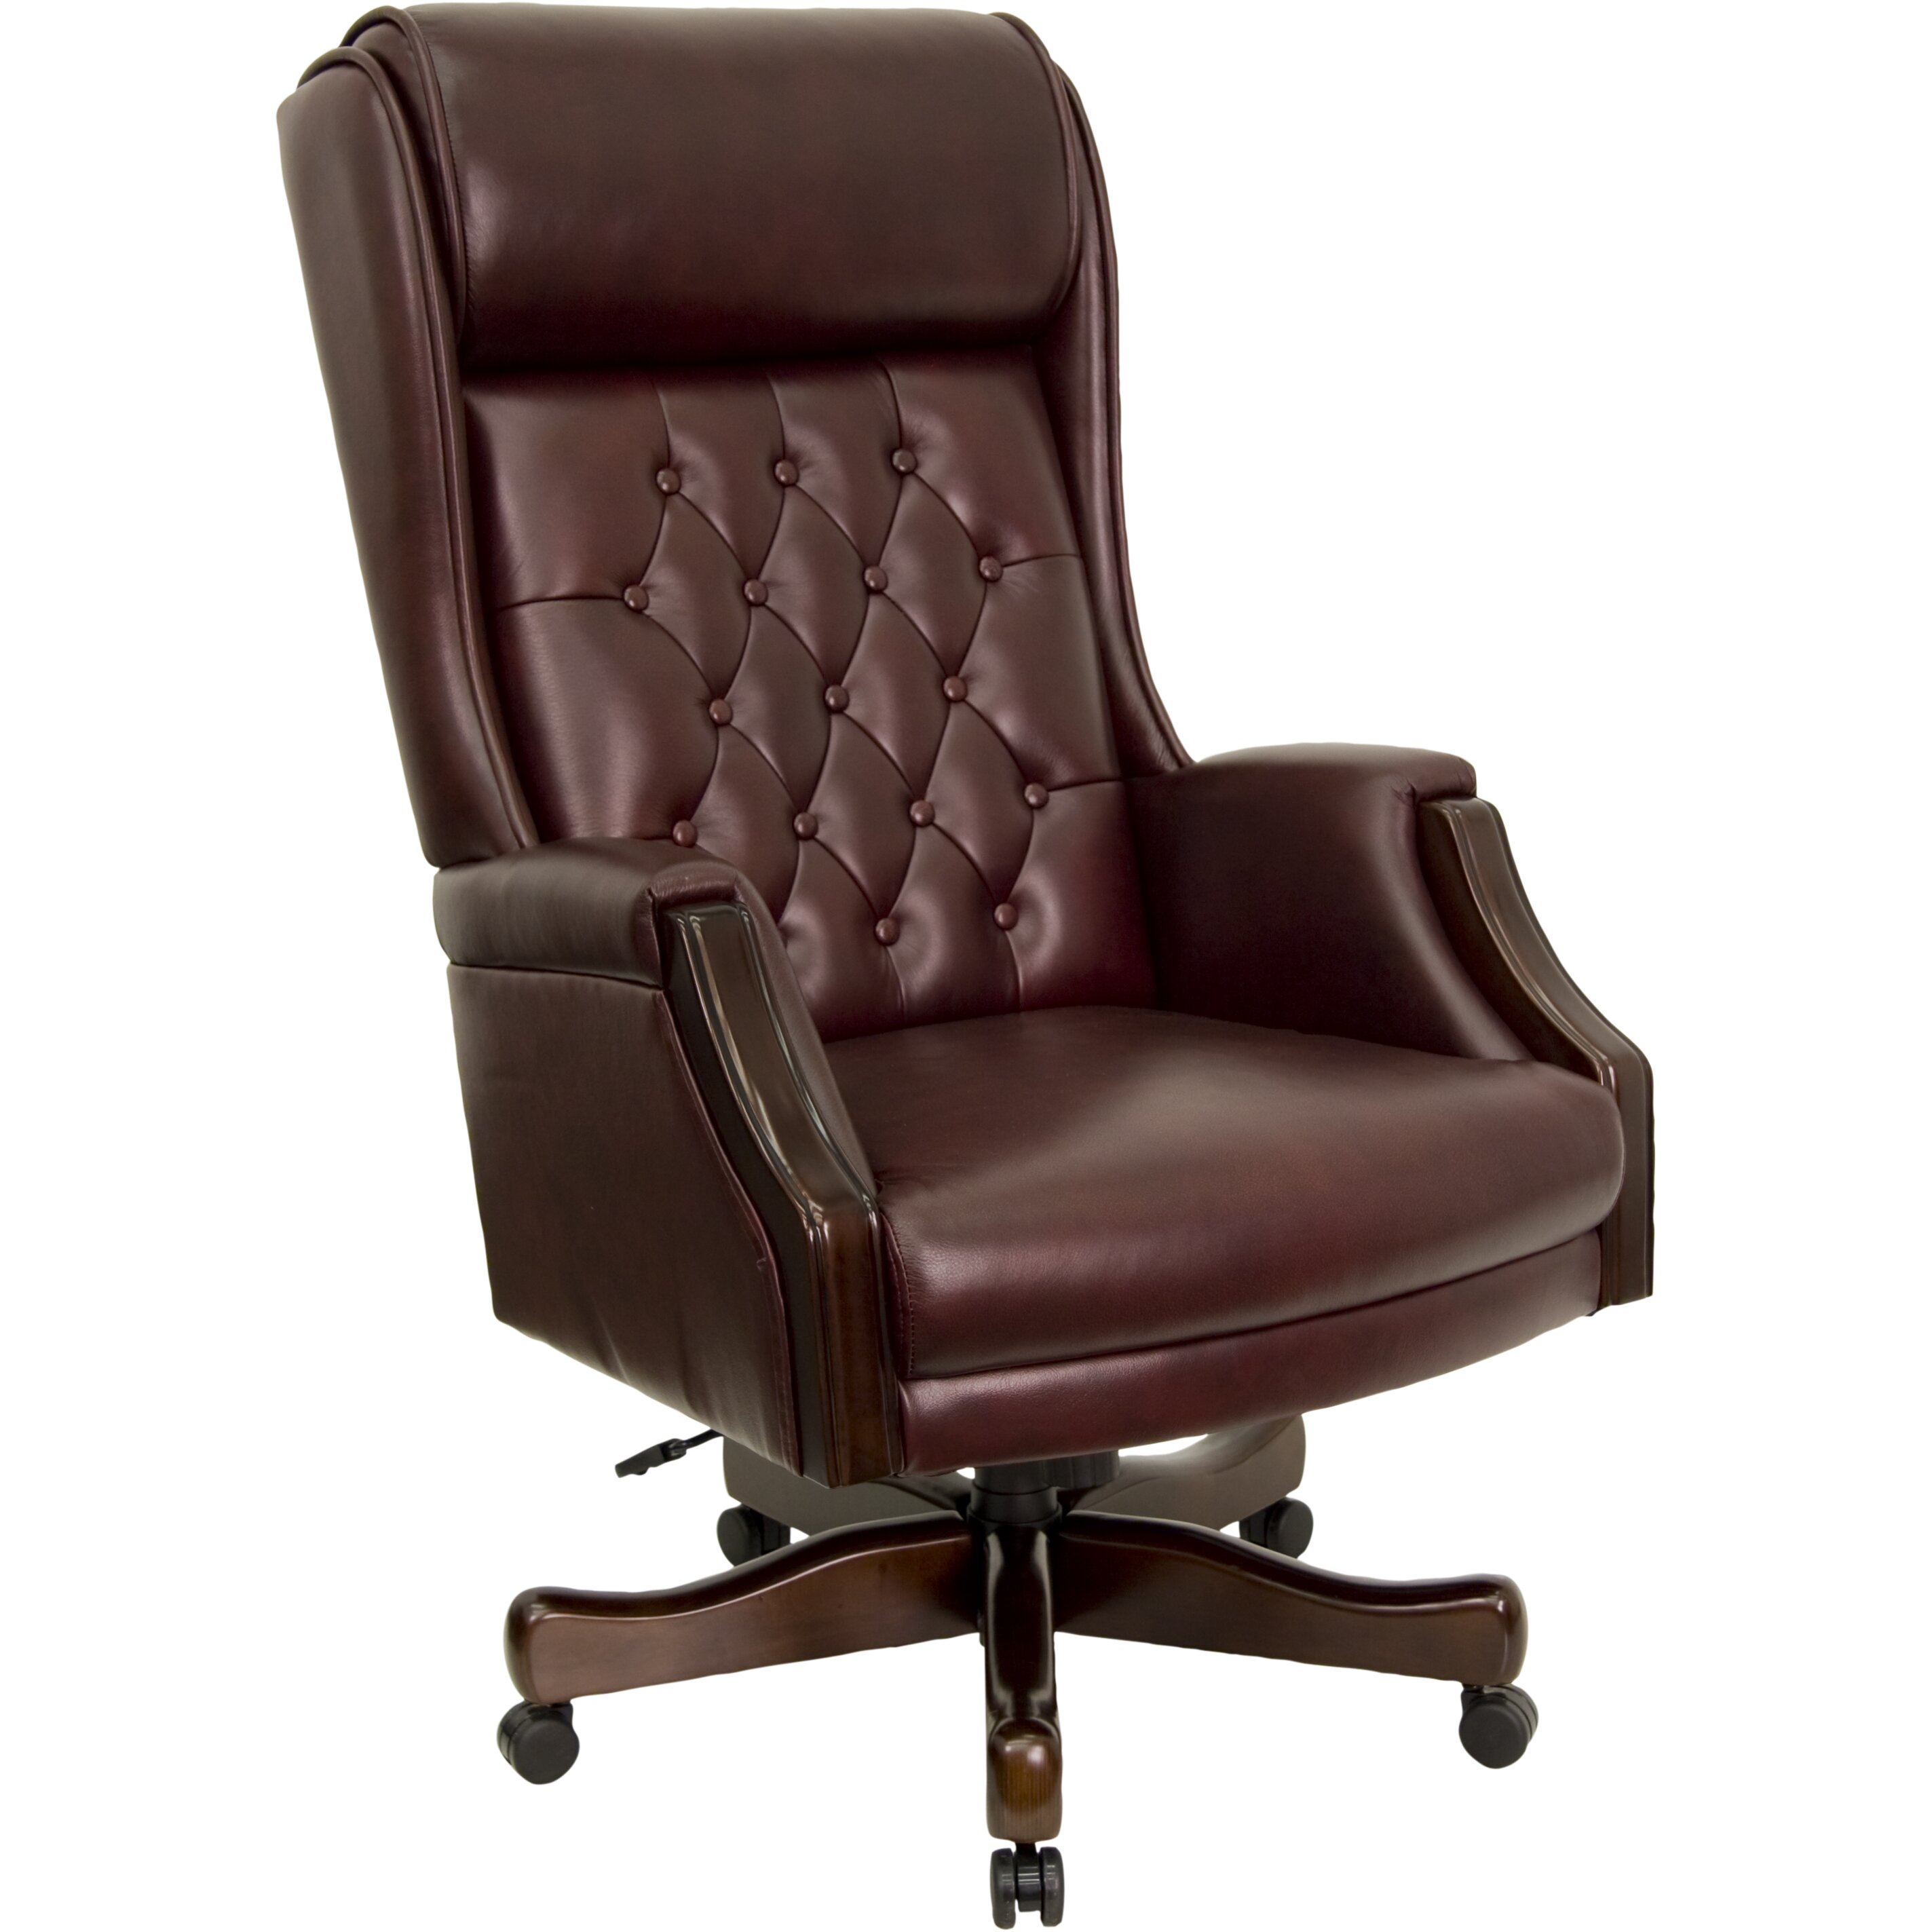 leather executive chair flash furniture leather executive chair amp reviews wayfair 16625 | Flash Furniture Leather Executive Chair